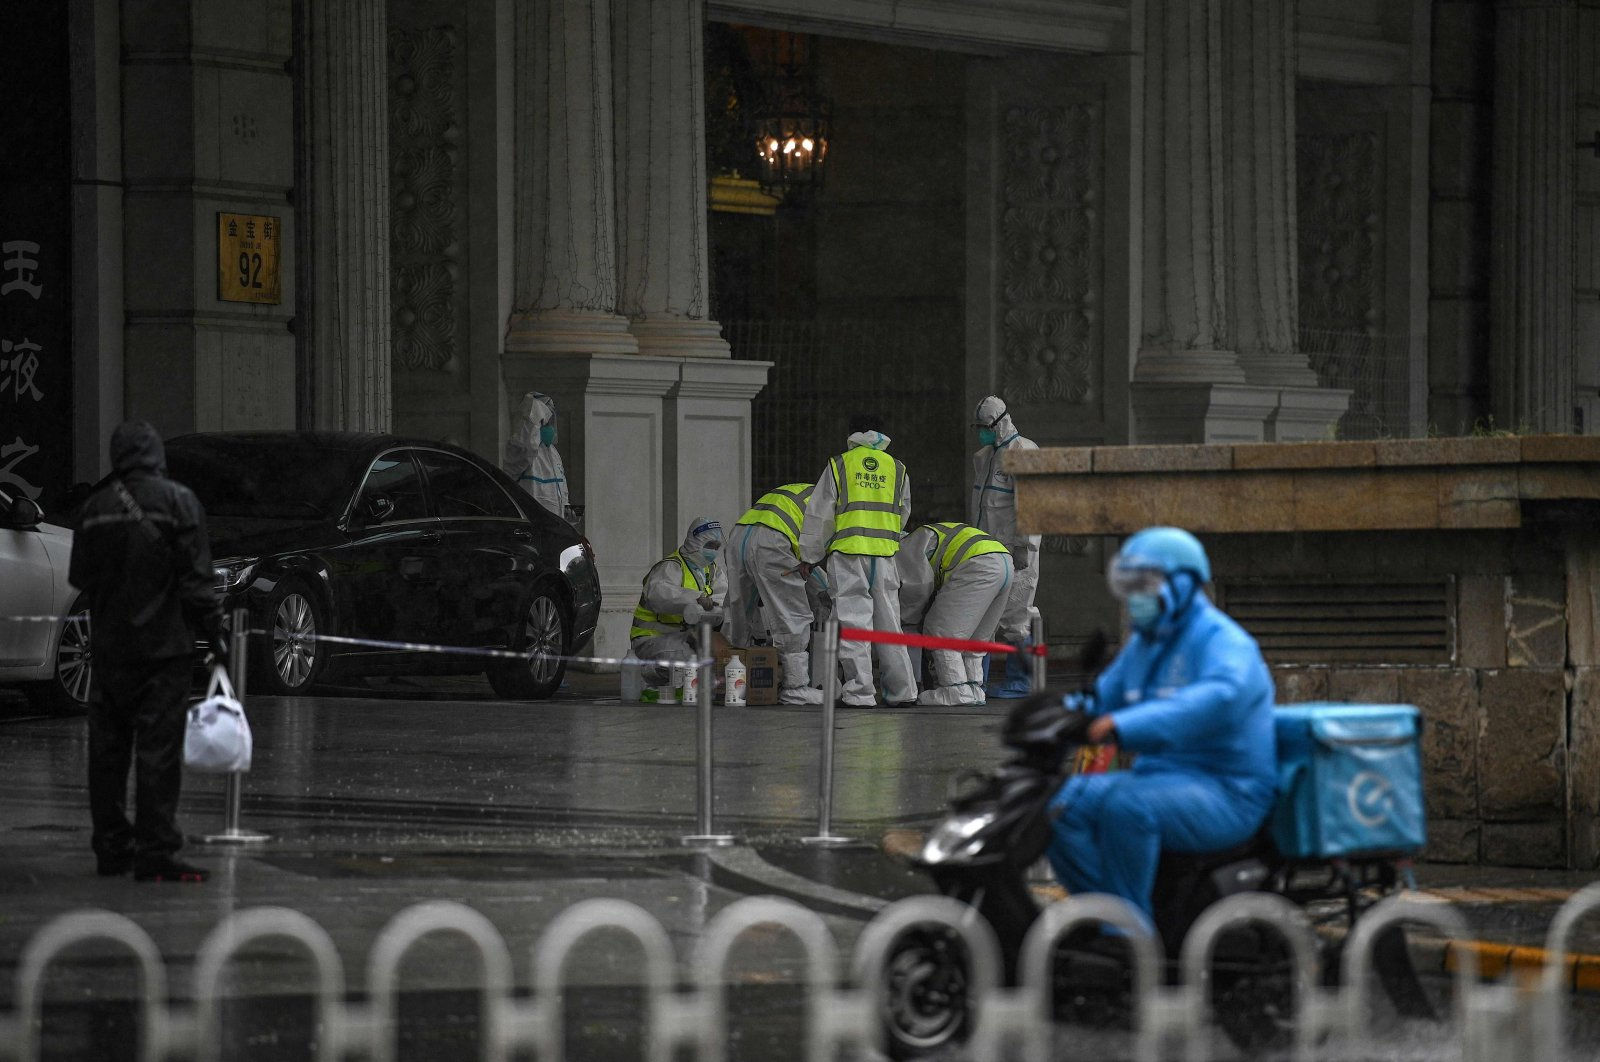 Health workers wearing personal protective equipment (PPE) stand at the entrance to the Legendale Hotel in the Wangfujing shopping district after China reported virus outbreaks in three cities, including the capital, Beijing, July 29, 2021. (AFP Photo)